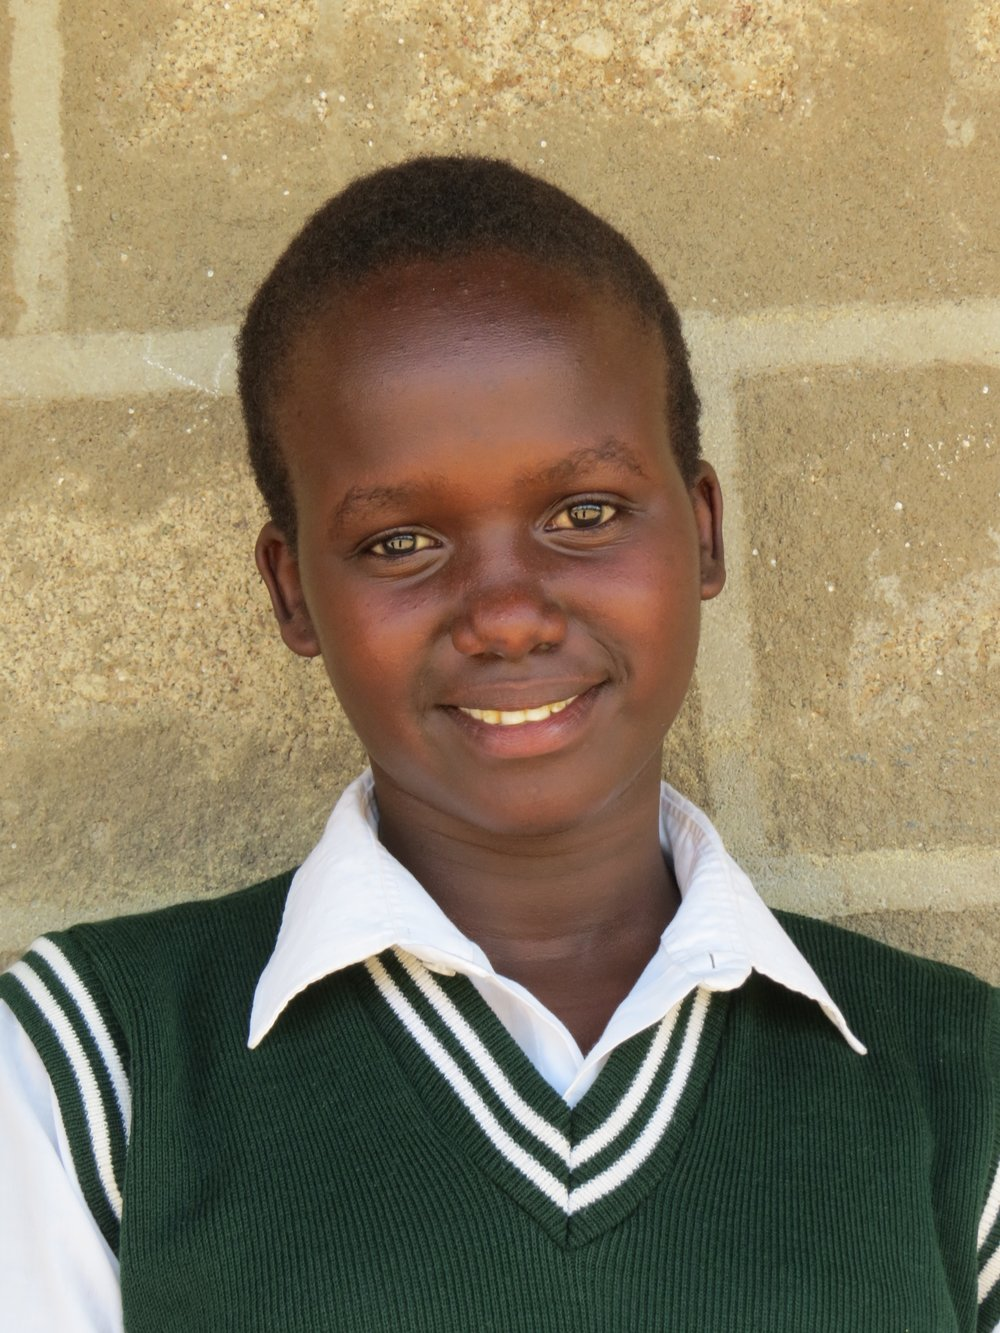 Sofia Letikaa   Secondary School Scholarship recipient from Baringo